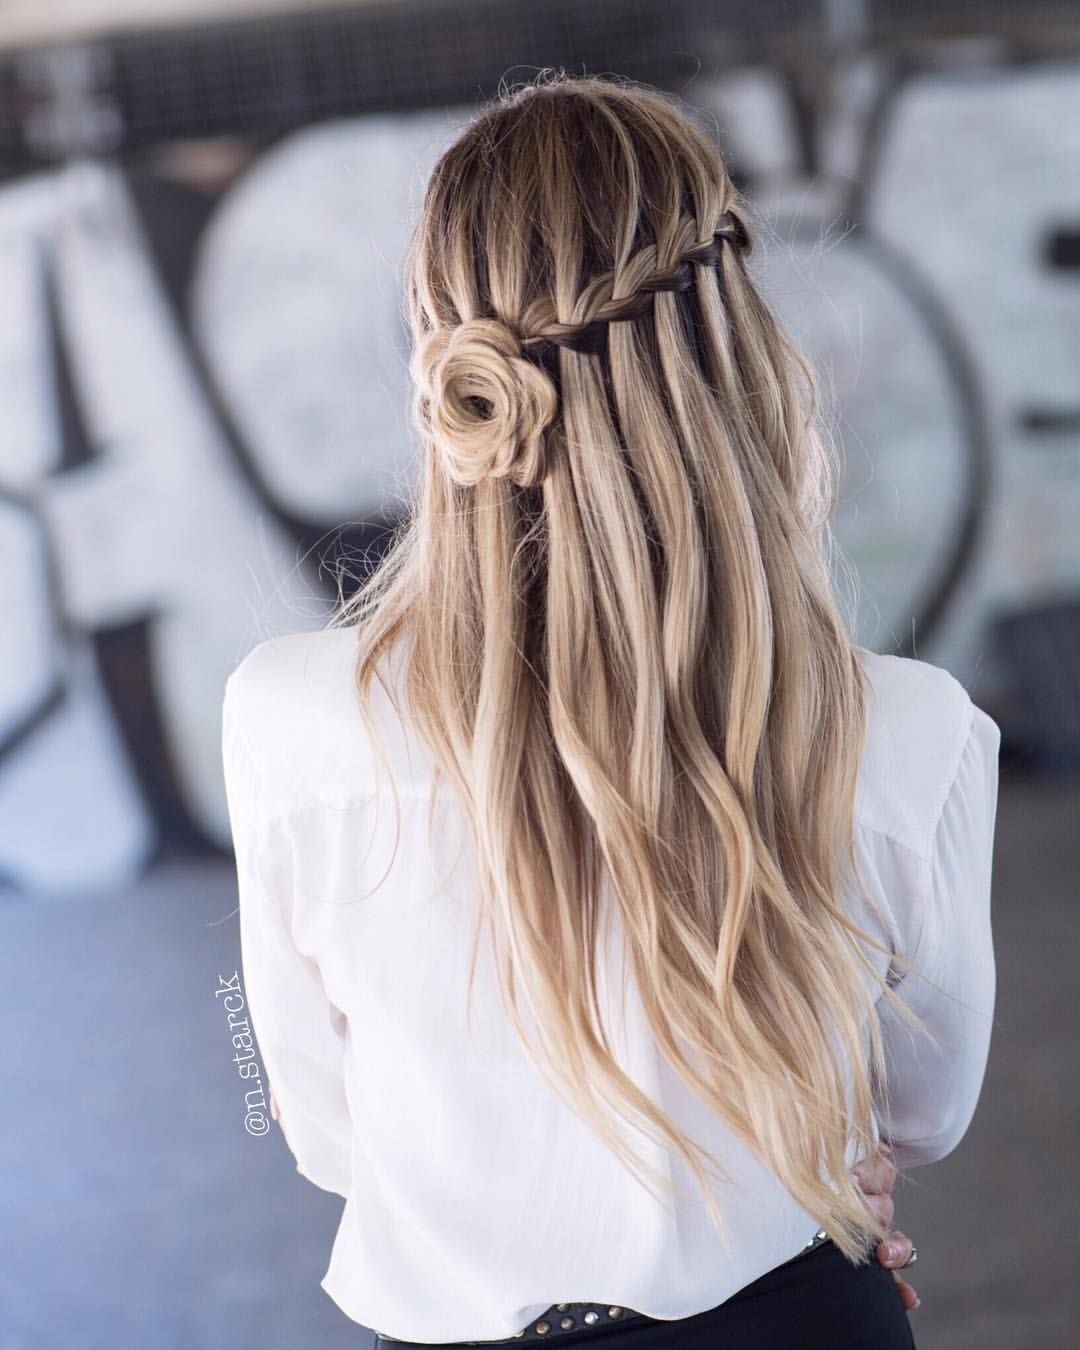 Hair Style Ideas Ig Hair Style Instagram Posts Videos Stories On Poshinsta Com Ighairstyle Hairtutoria Thick Hair Styles Hair Styles Down Hairstyles